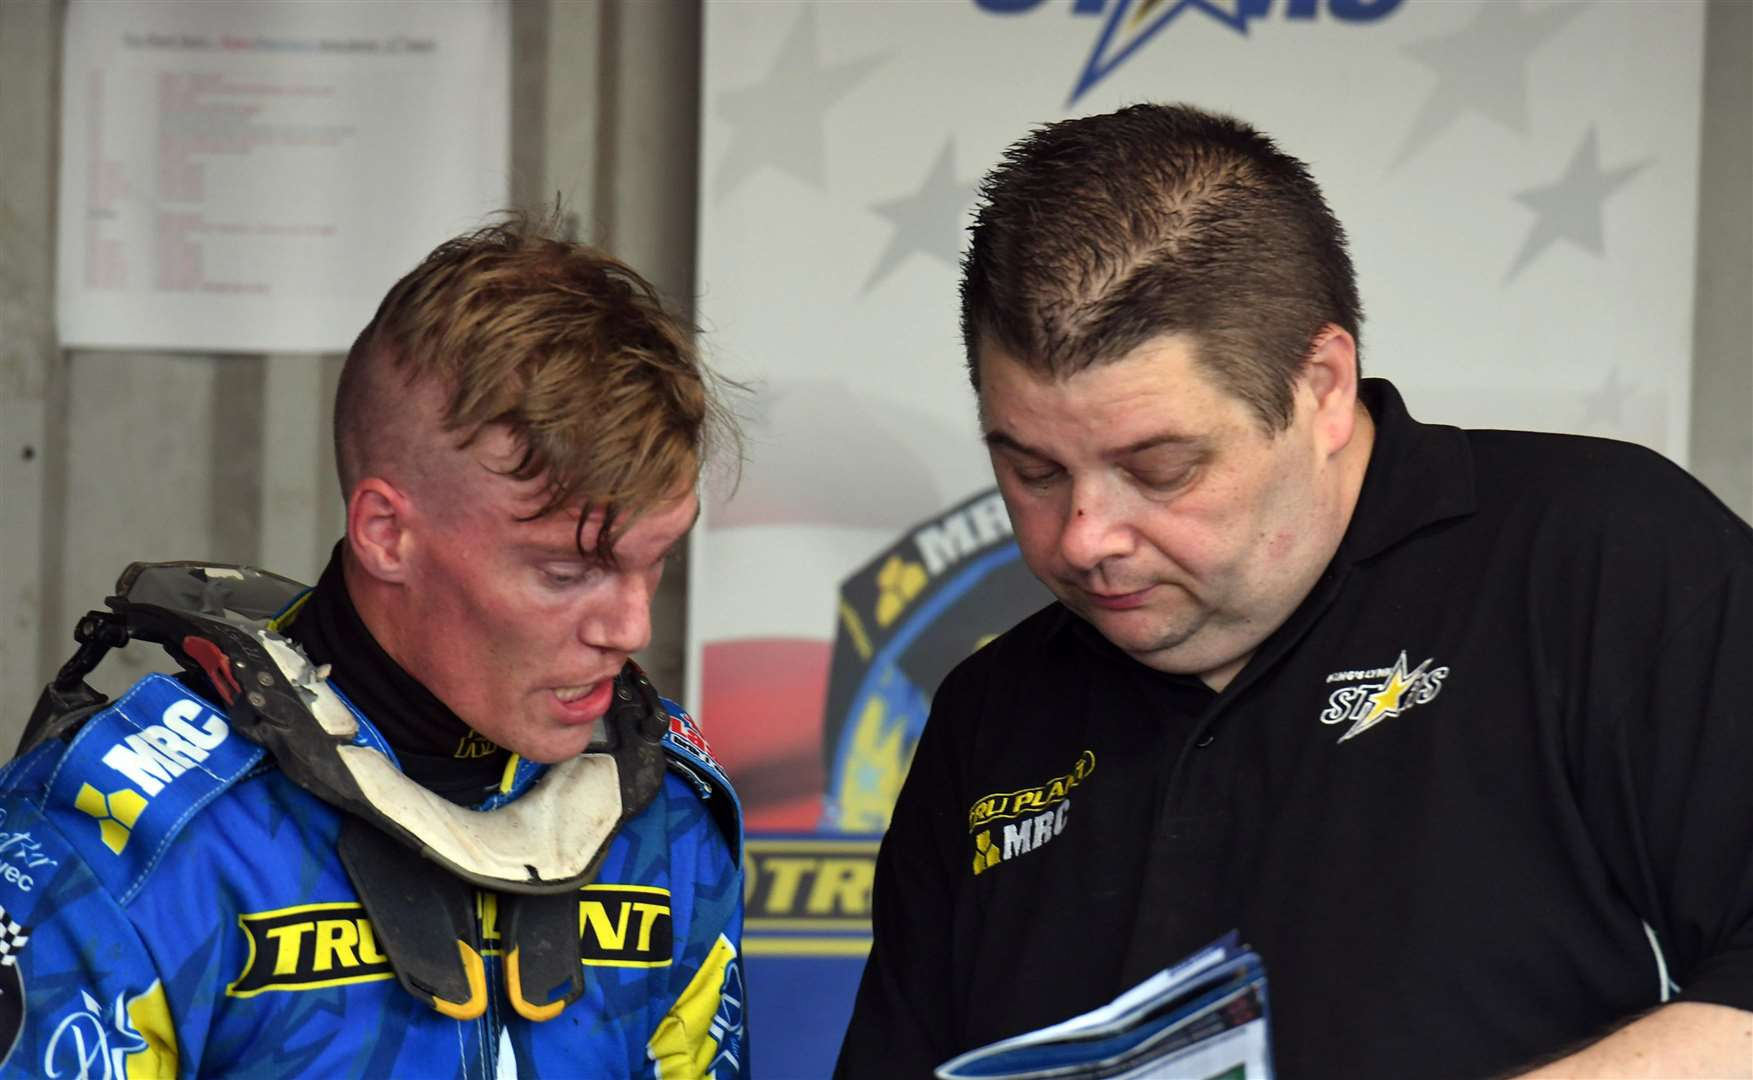 Michael Palm Toft deep in discussion with Lynn Stars team boss Dale Allitt.